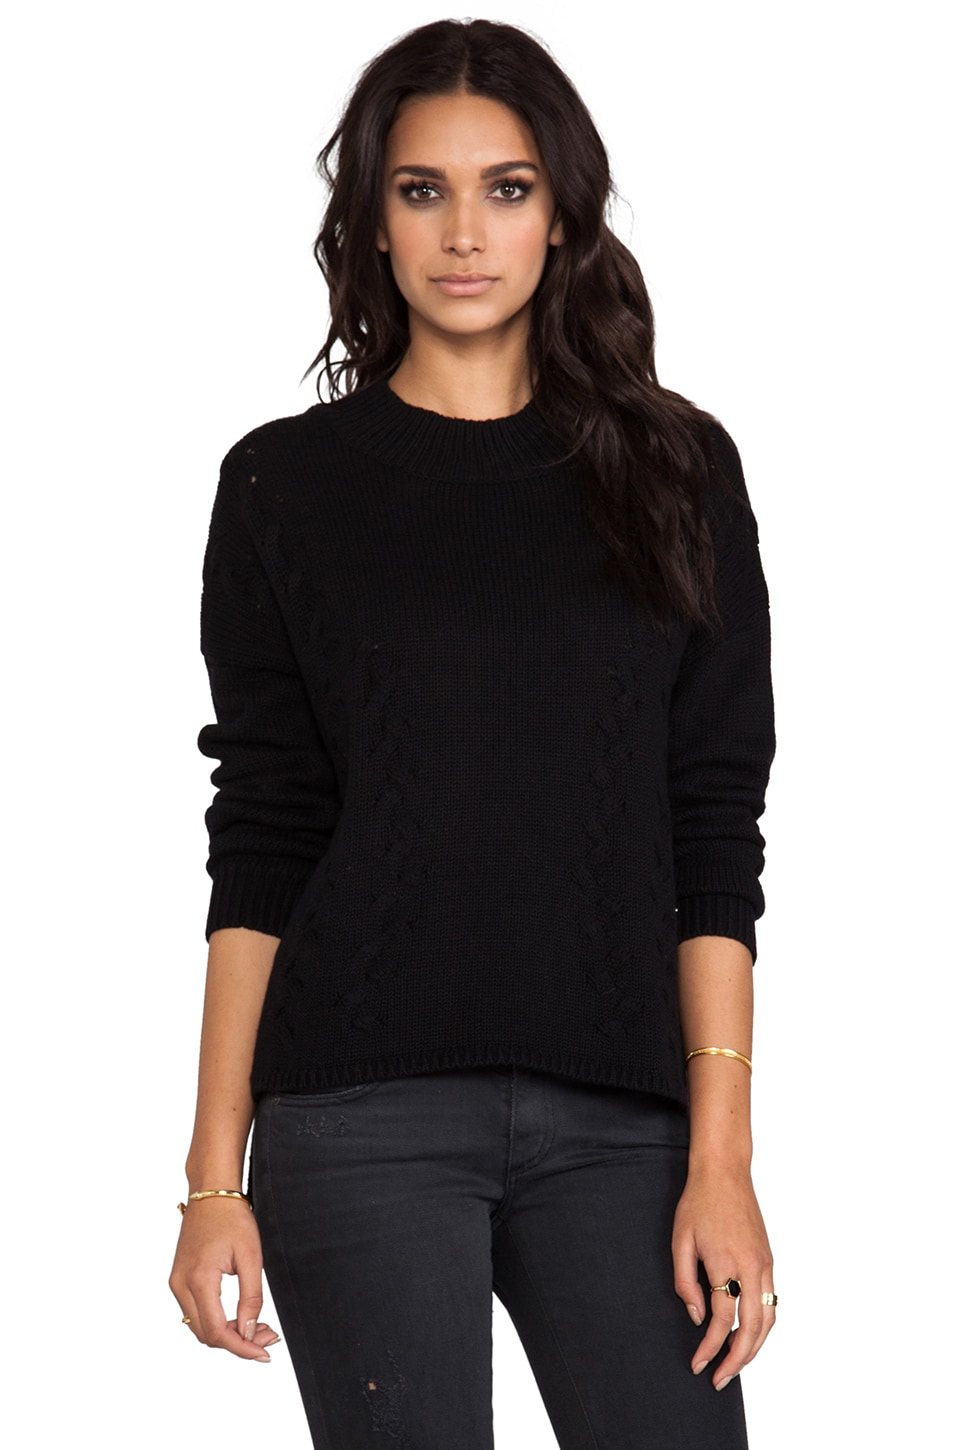 LNA Braided Turtleneck Sweater in Black